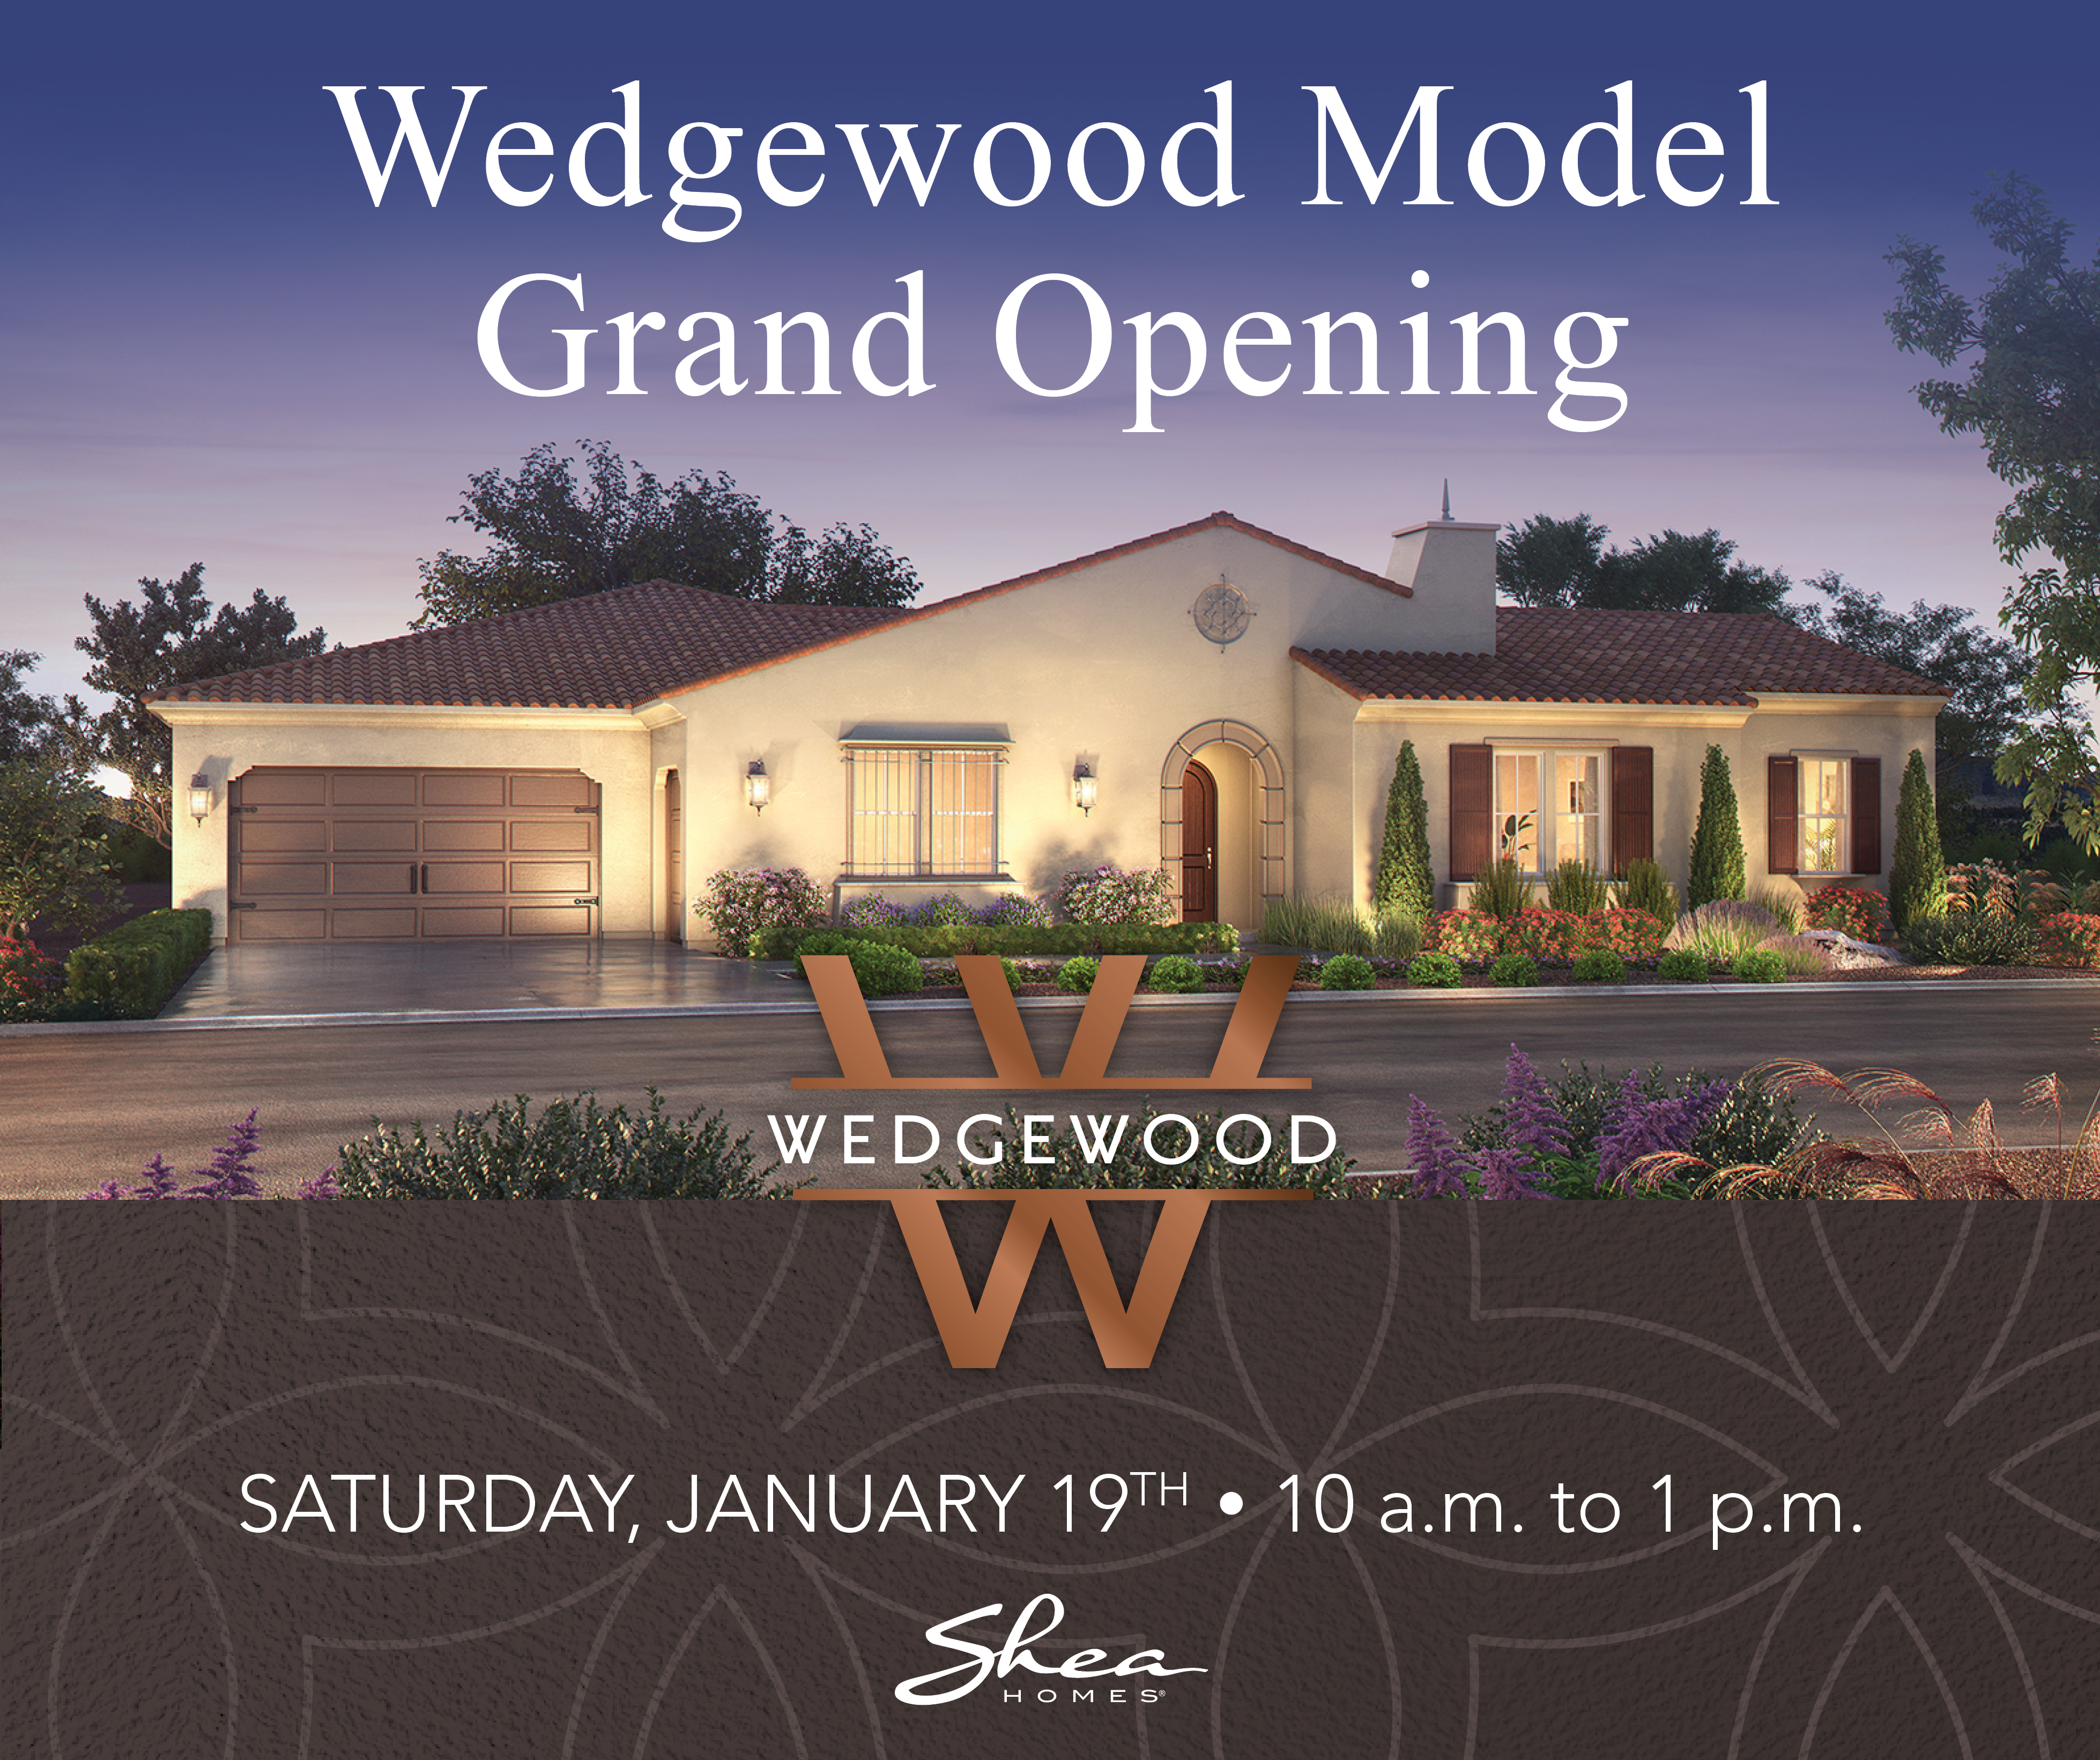 You're Invited to the Model Grand Opening of Wedgewood in Yorba Linda, CA